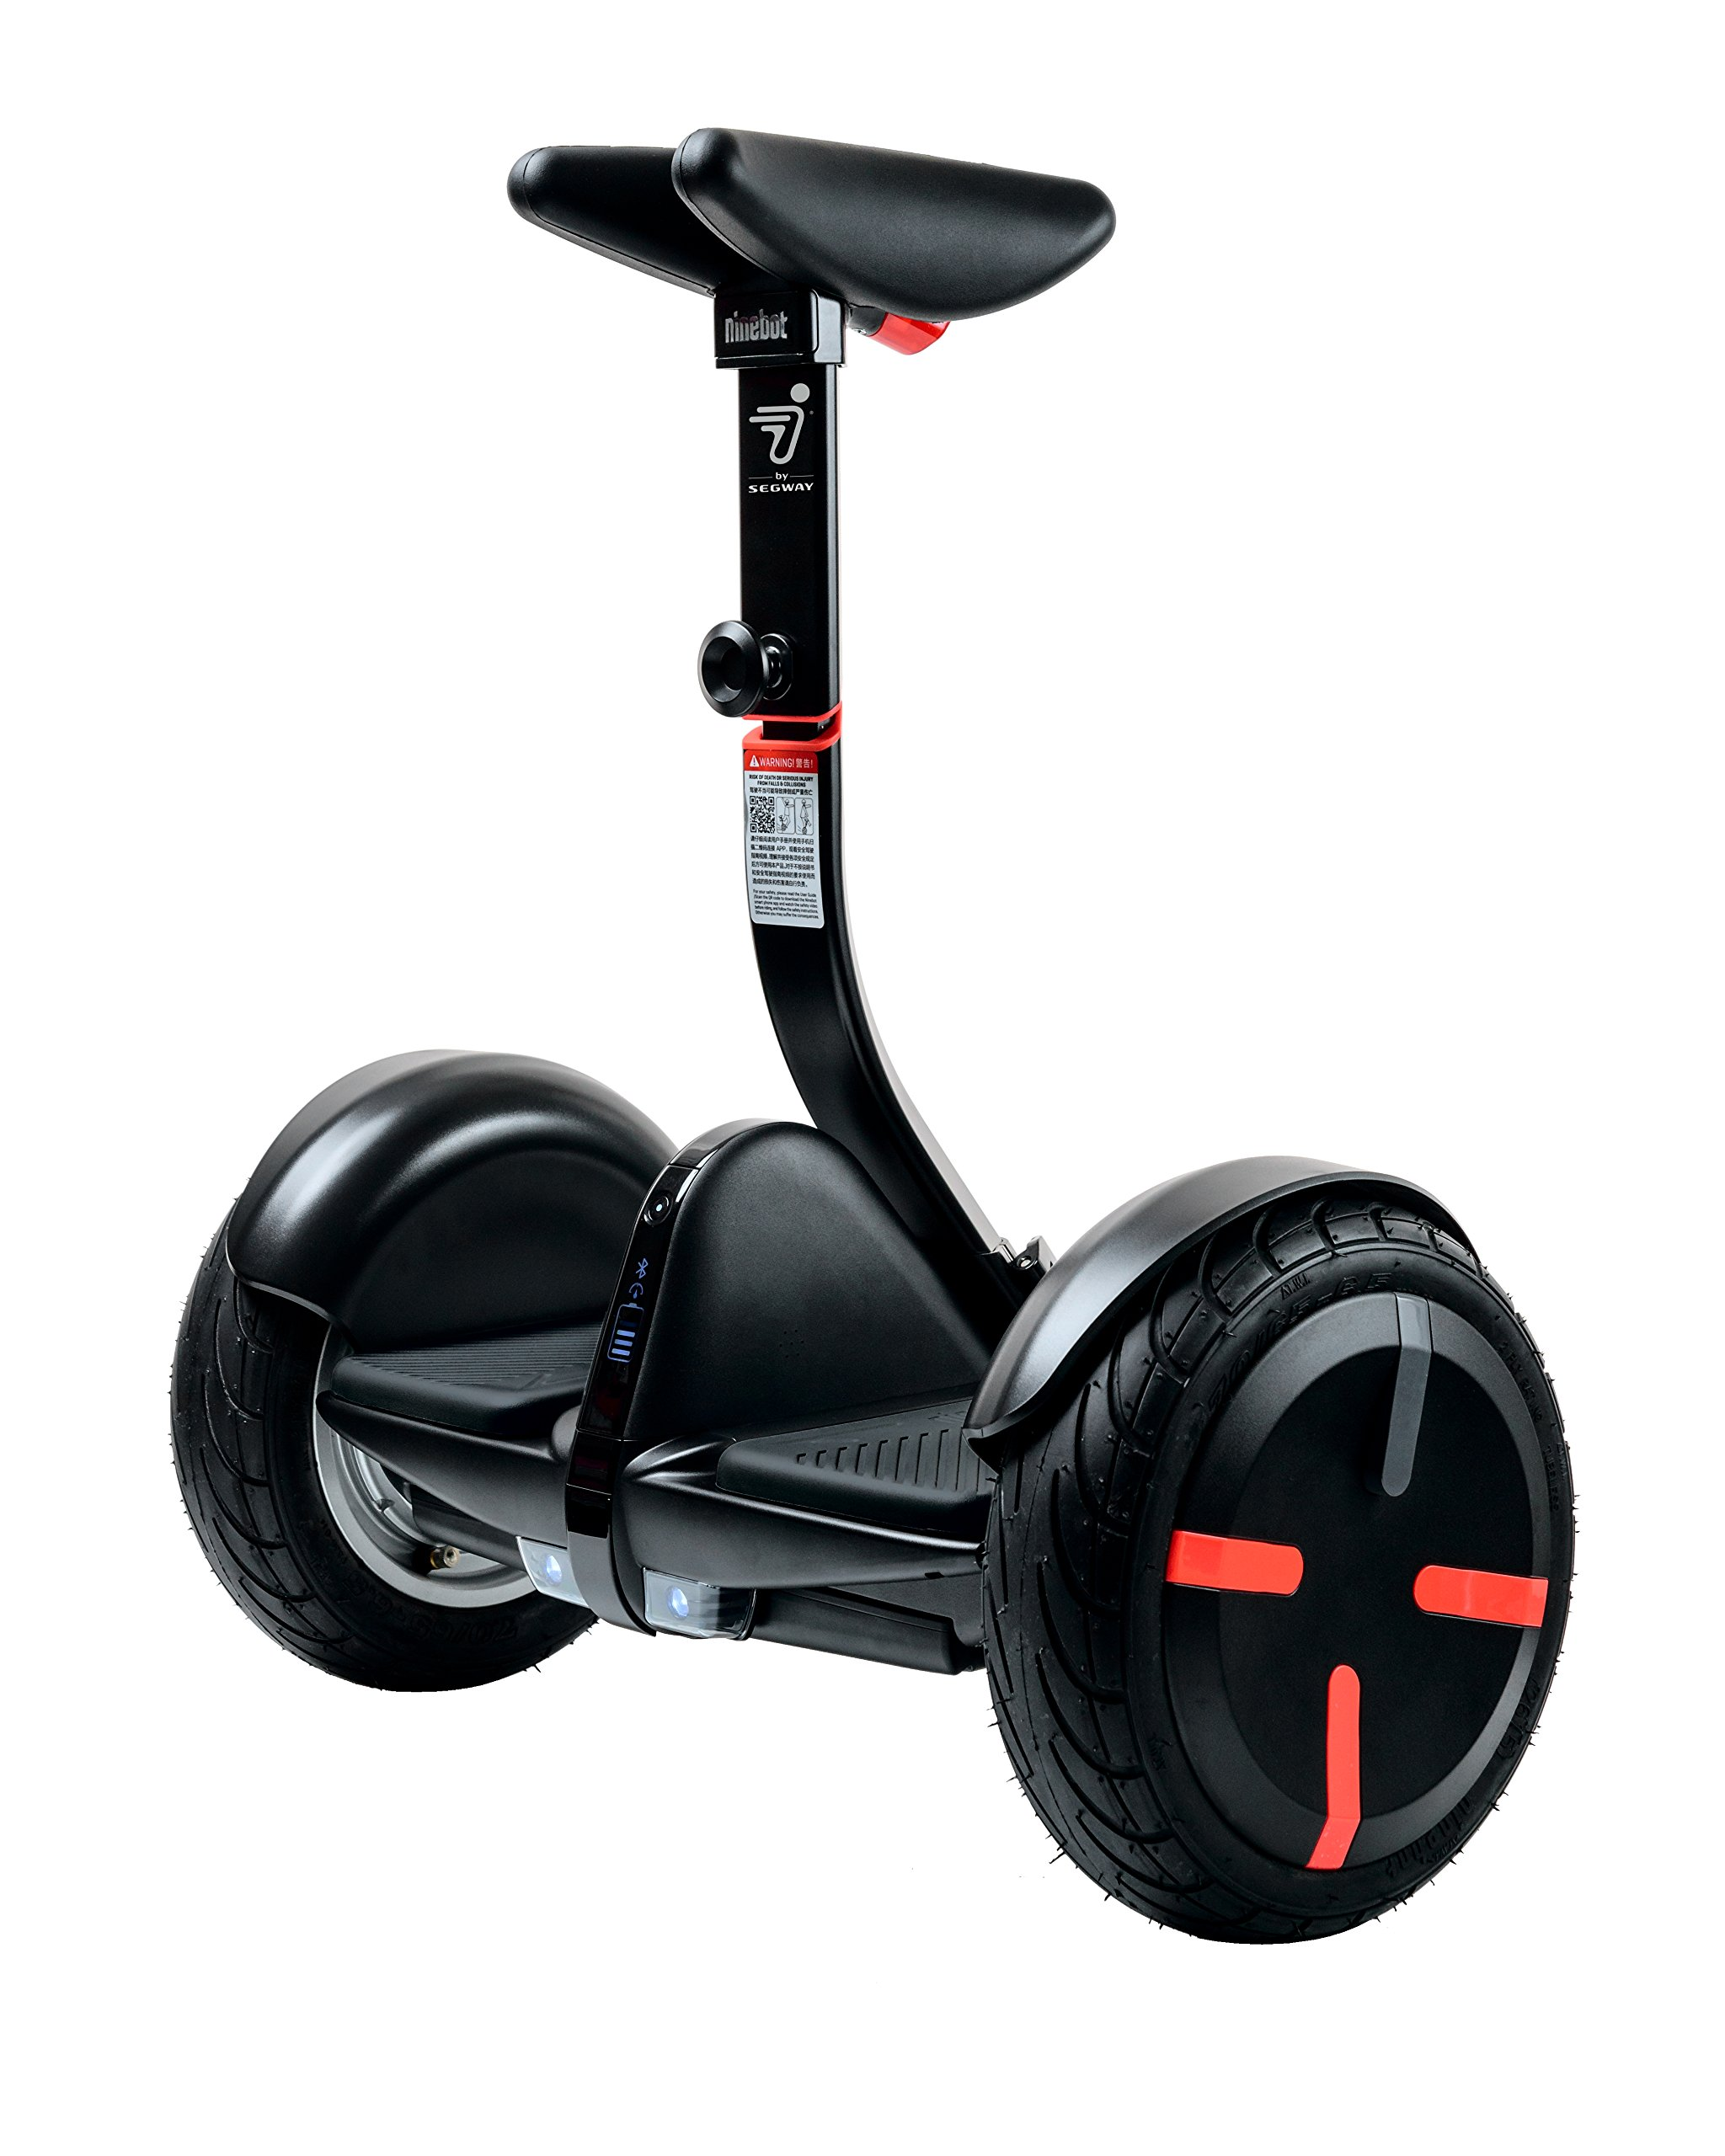 Segway Minipro Smart Self Balancing Personal w/Mobile App Control Transporter